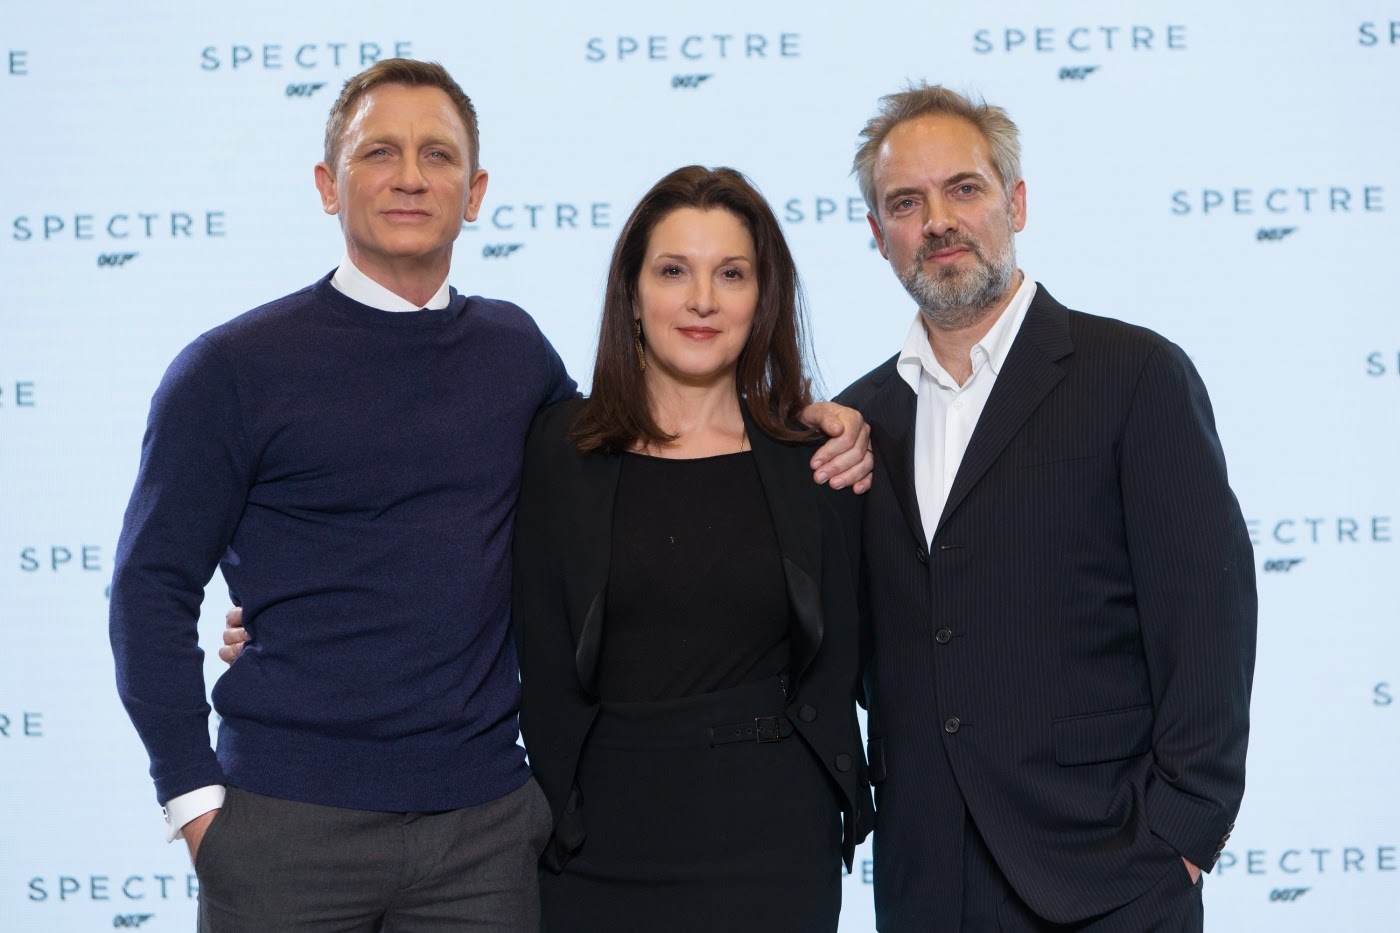 Bond 24 SPECTRE: Daniel Craig, Barbara Broccoli, Sam Mendes